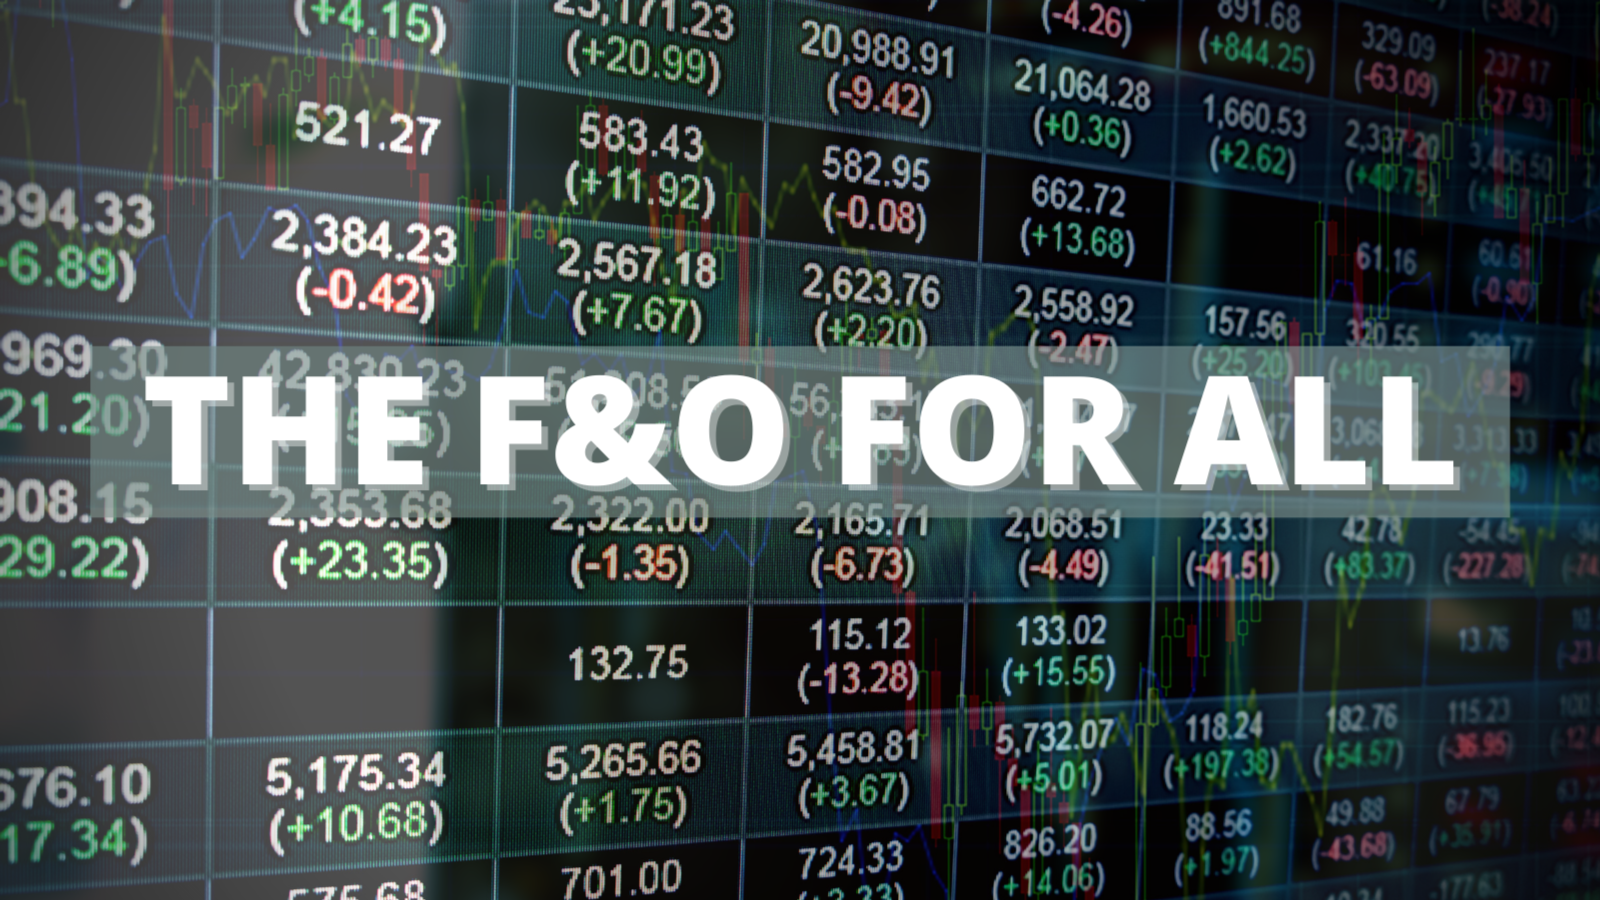 Future and Option trading with small capital